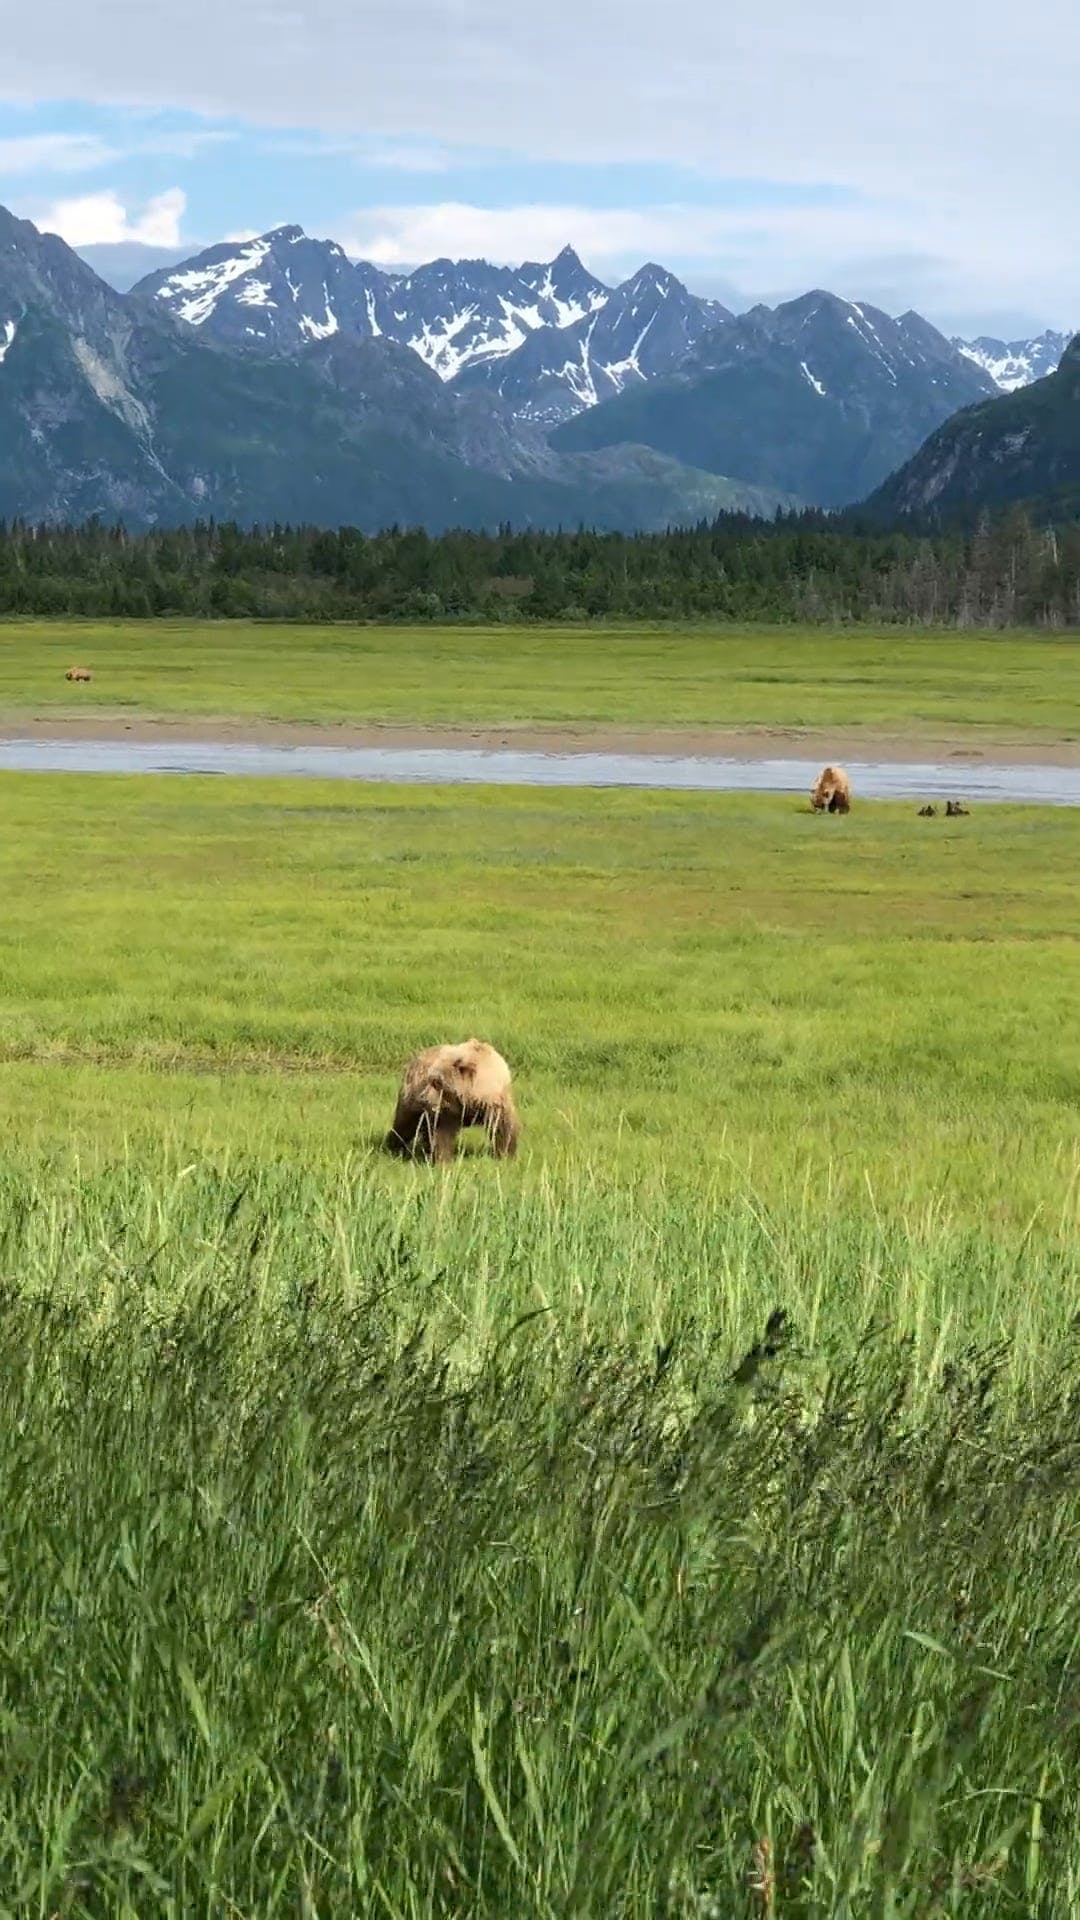 Brown Bear Feeding On Grass